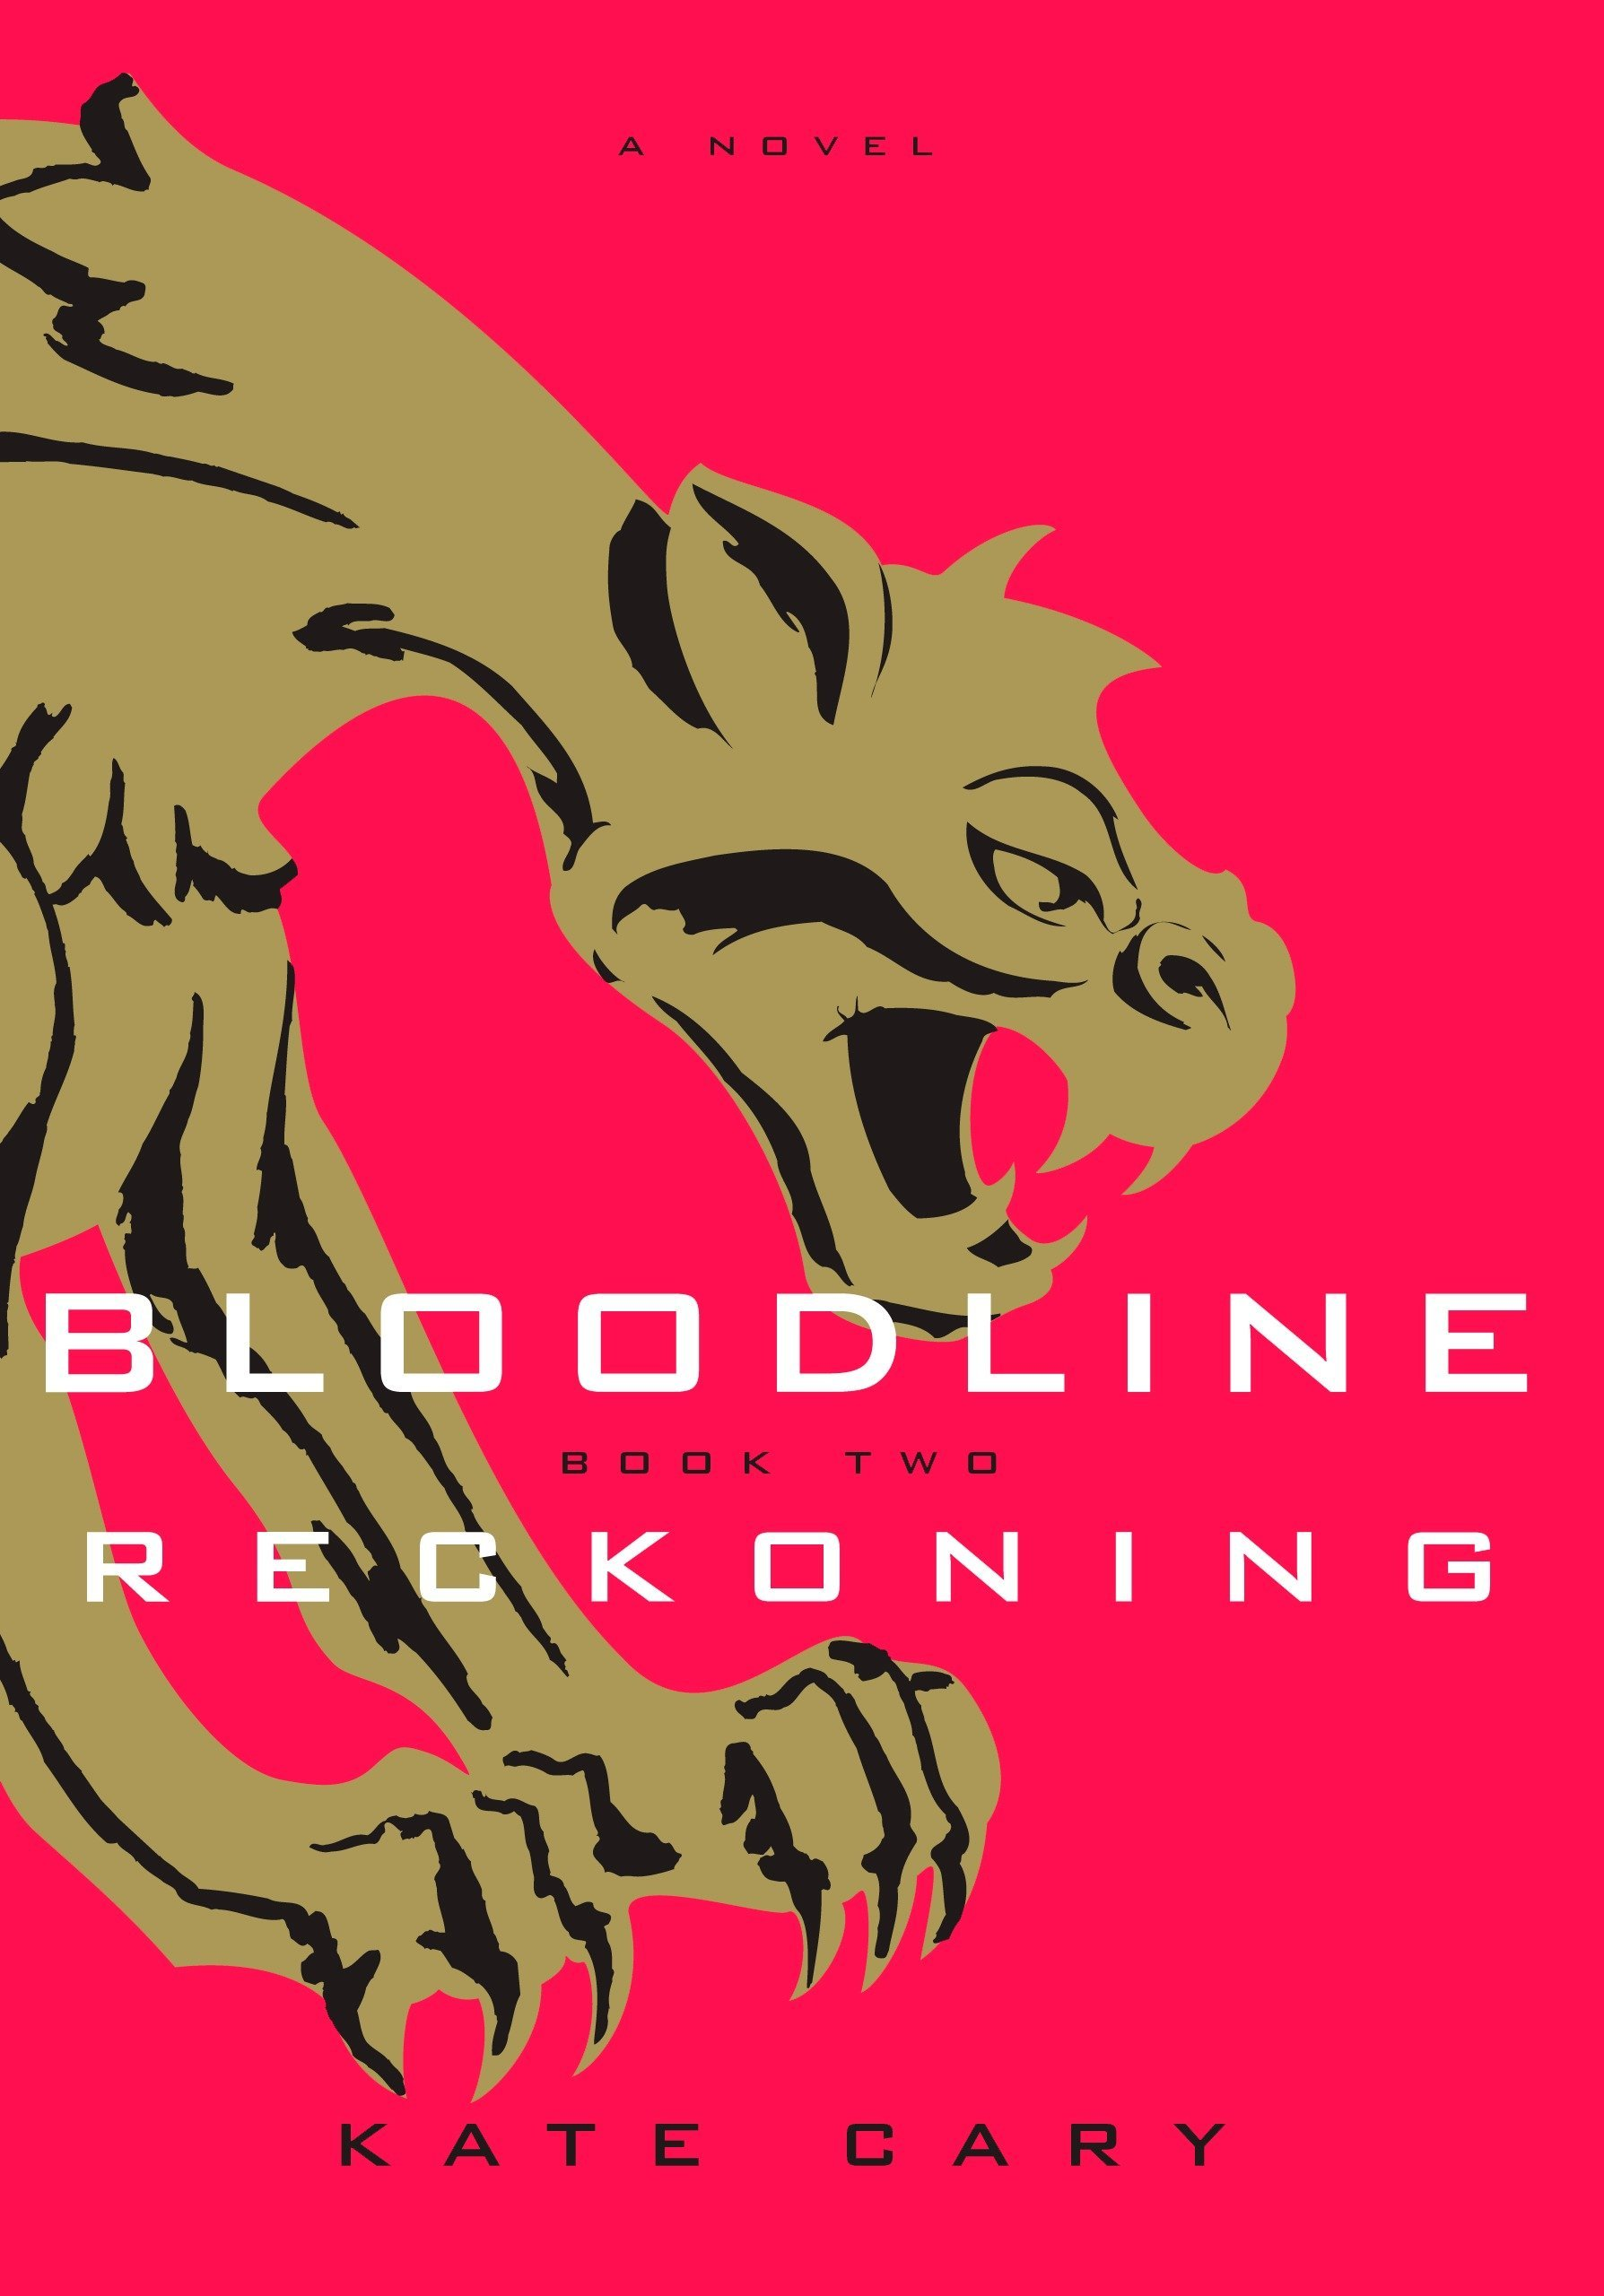 Ebook Reckoning Bloodline 2 By Kate Cary